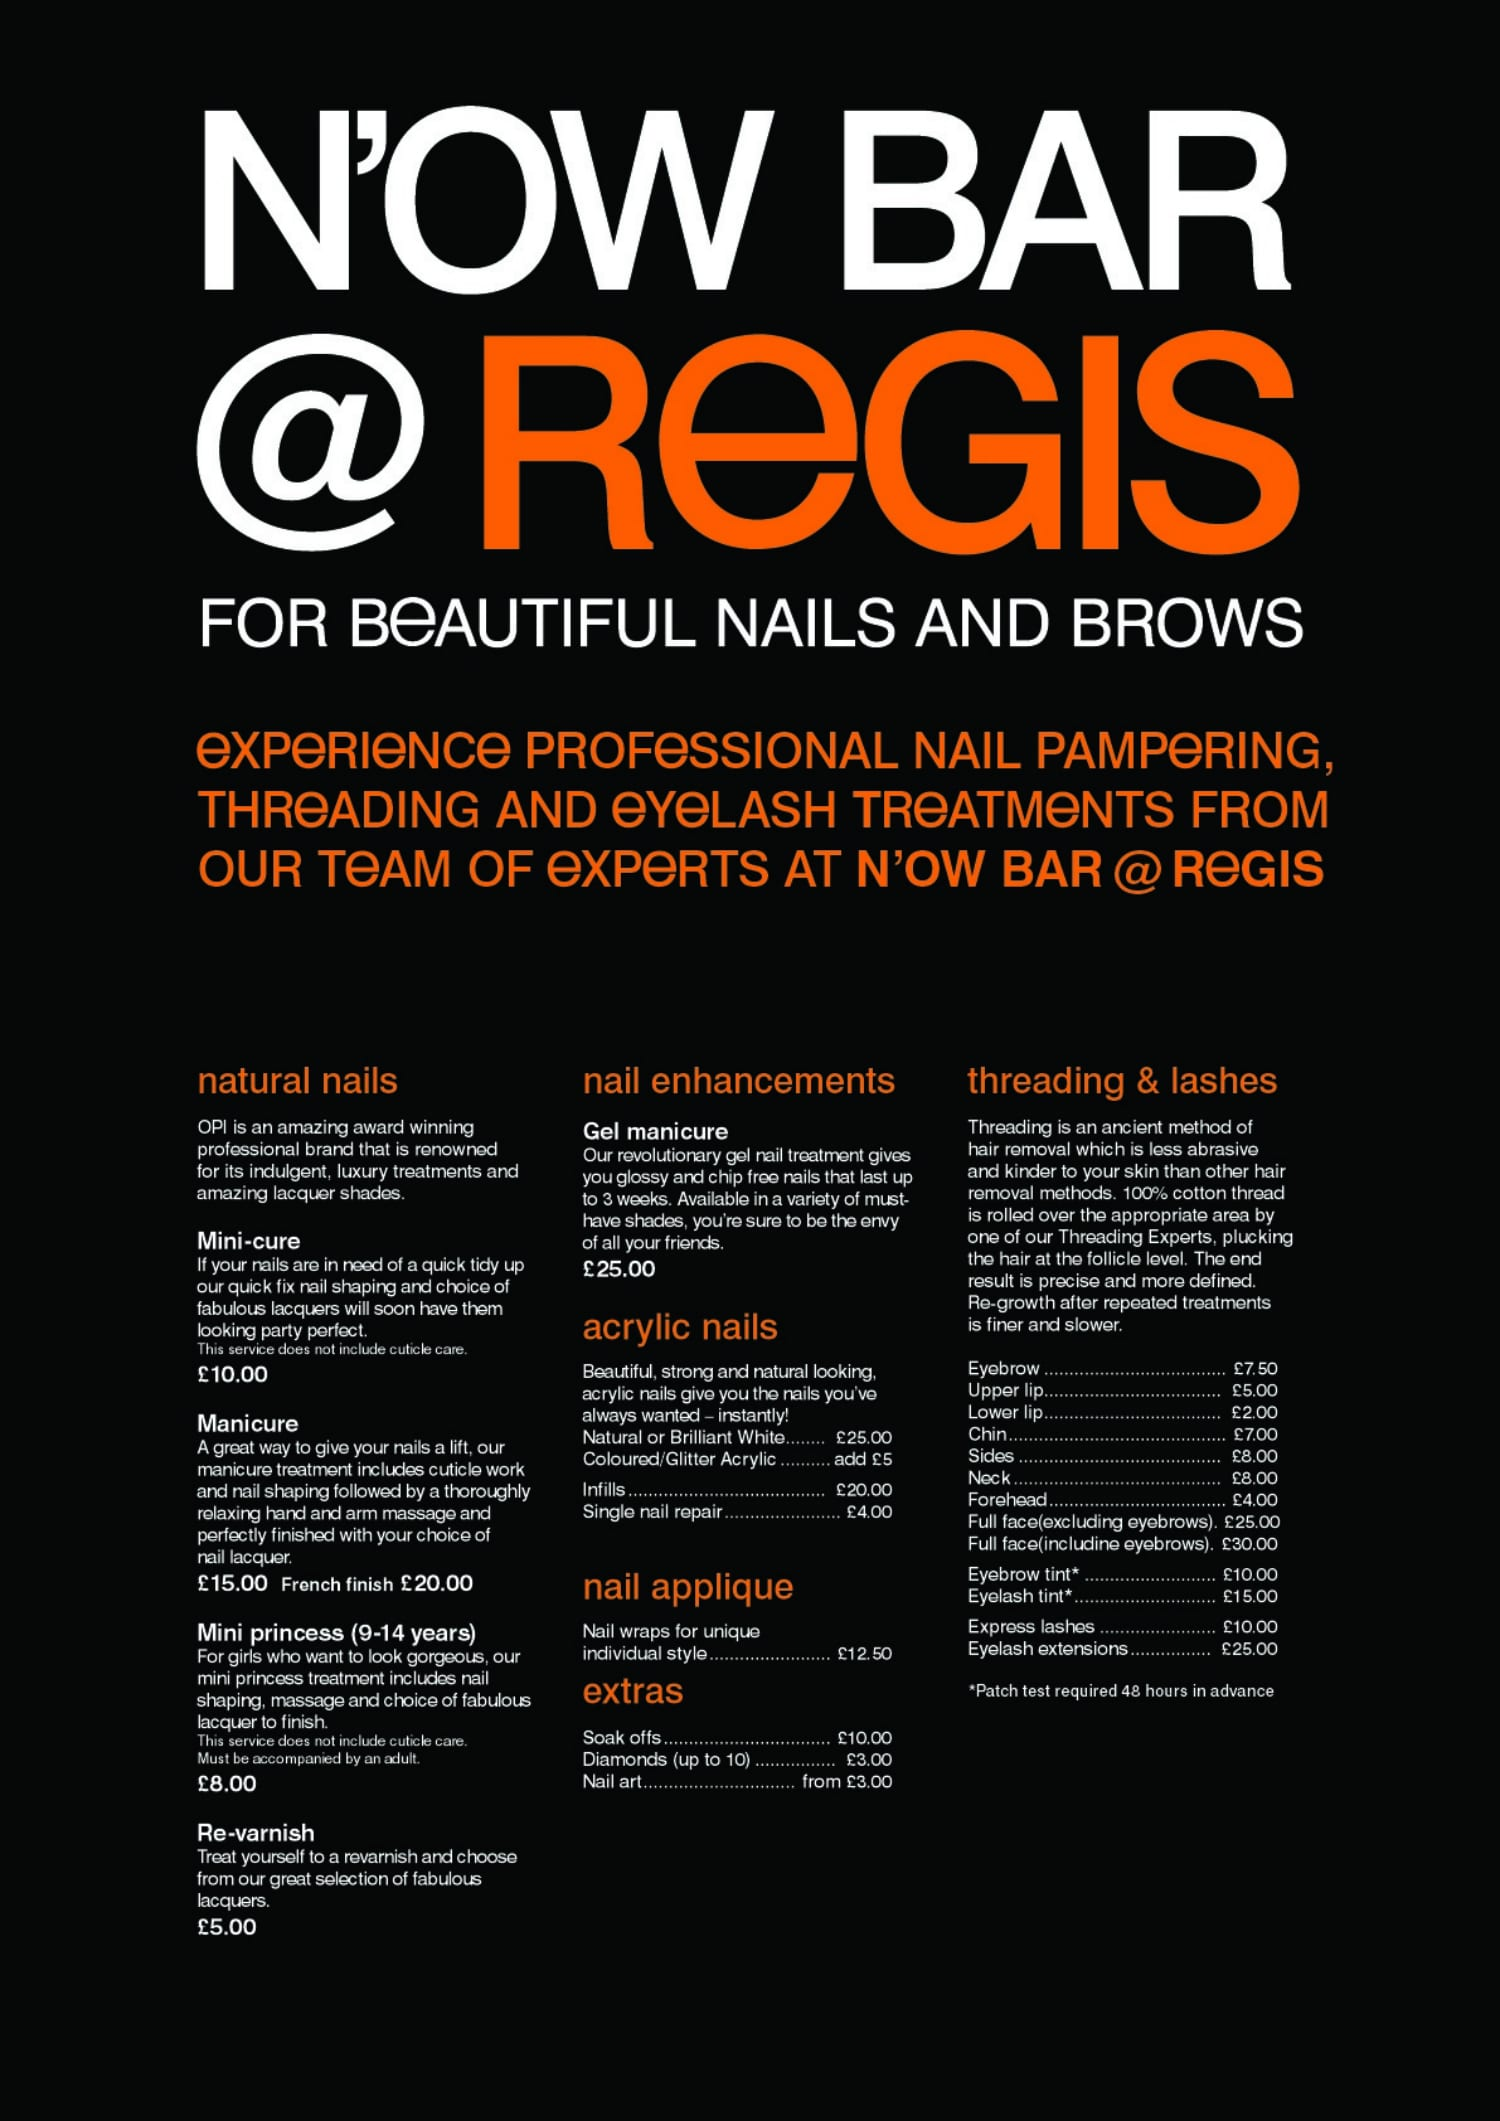 Professional nail pampering at the n 39 ow bars regis for Academy for salon professionals price list